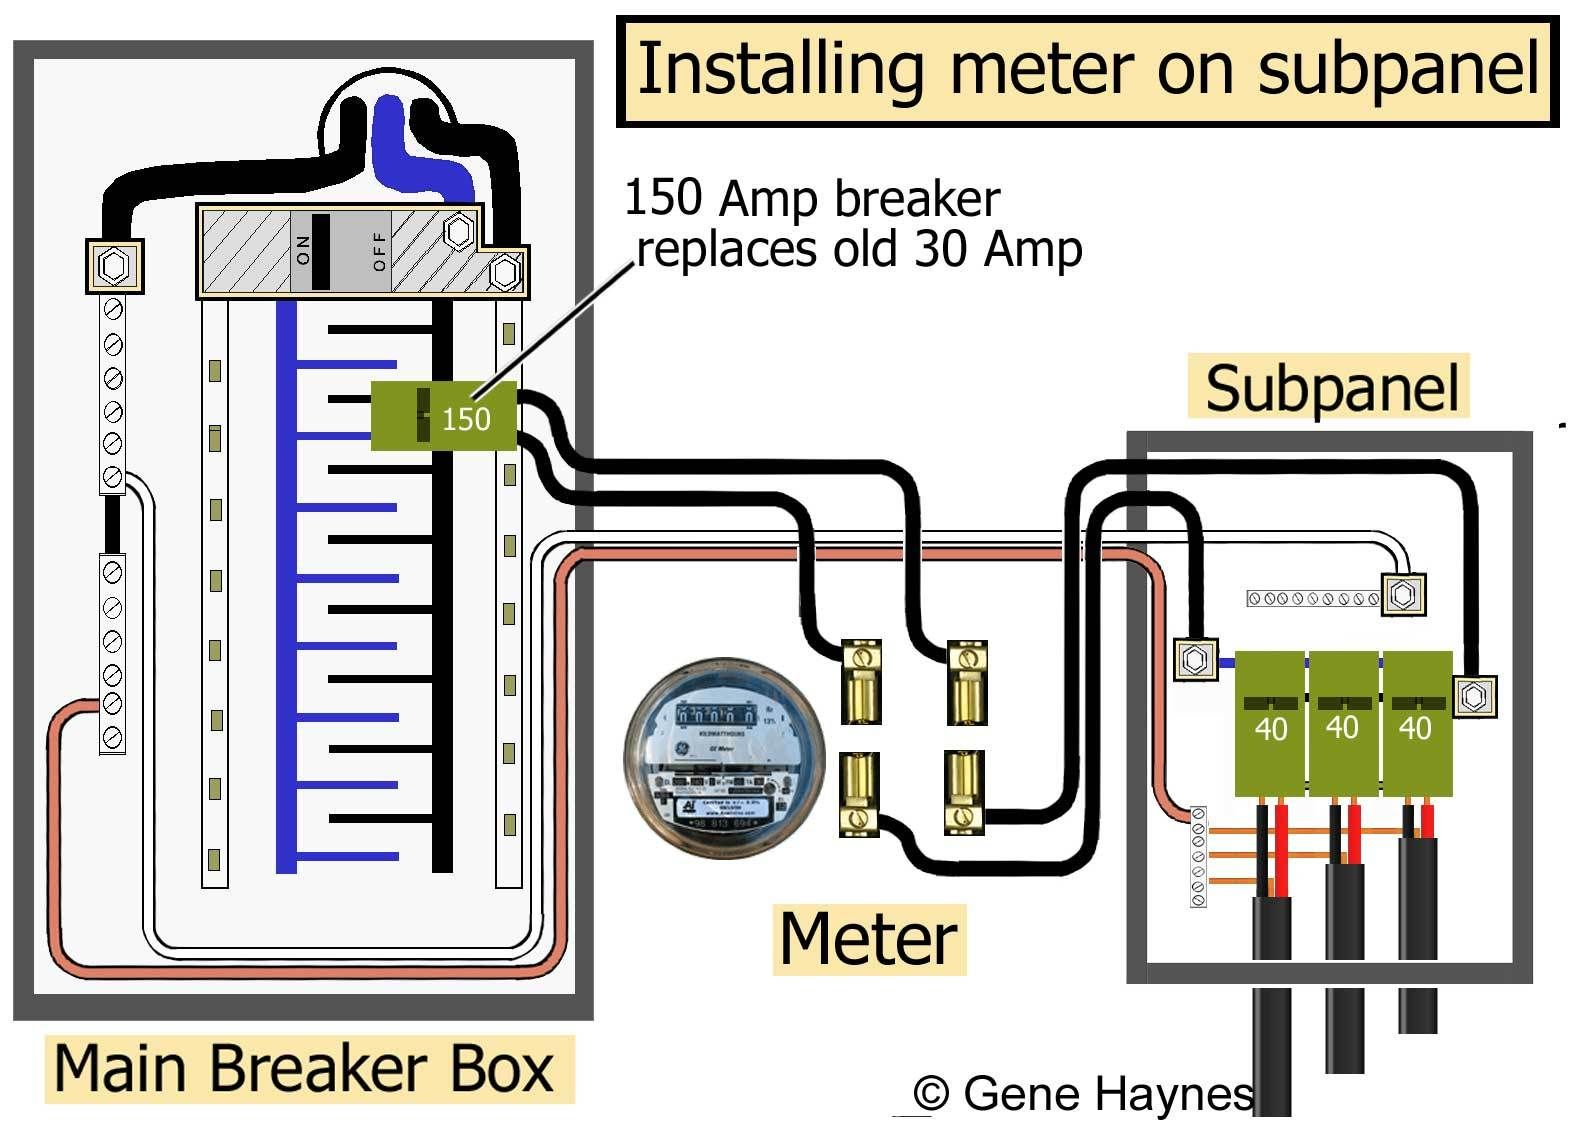 Pleasing Electric Sub Meter Wiring Diagram Wirdig Wiring Diagram Wiring Cloud Brecesaoduqqnet